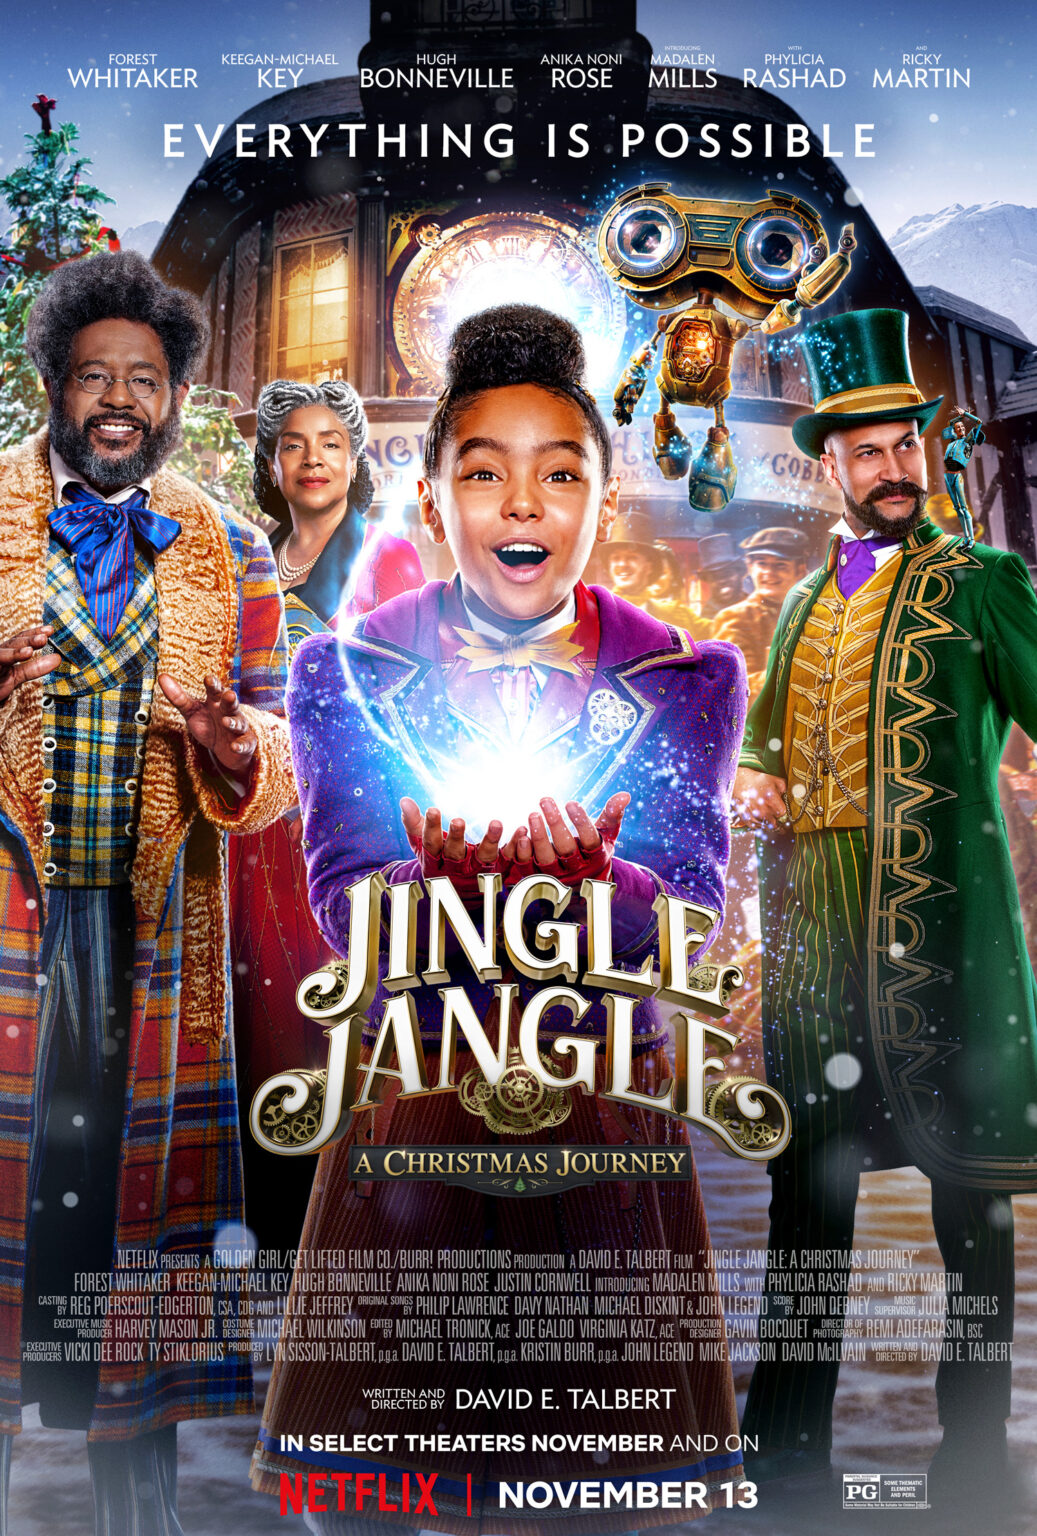 JingleJangle_Vertical_Payoff_RGB_EN-US-THEATRICAL-1037x1536